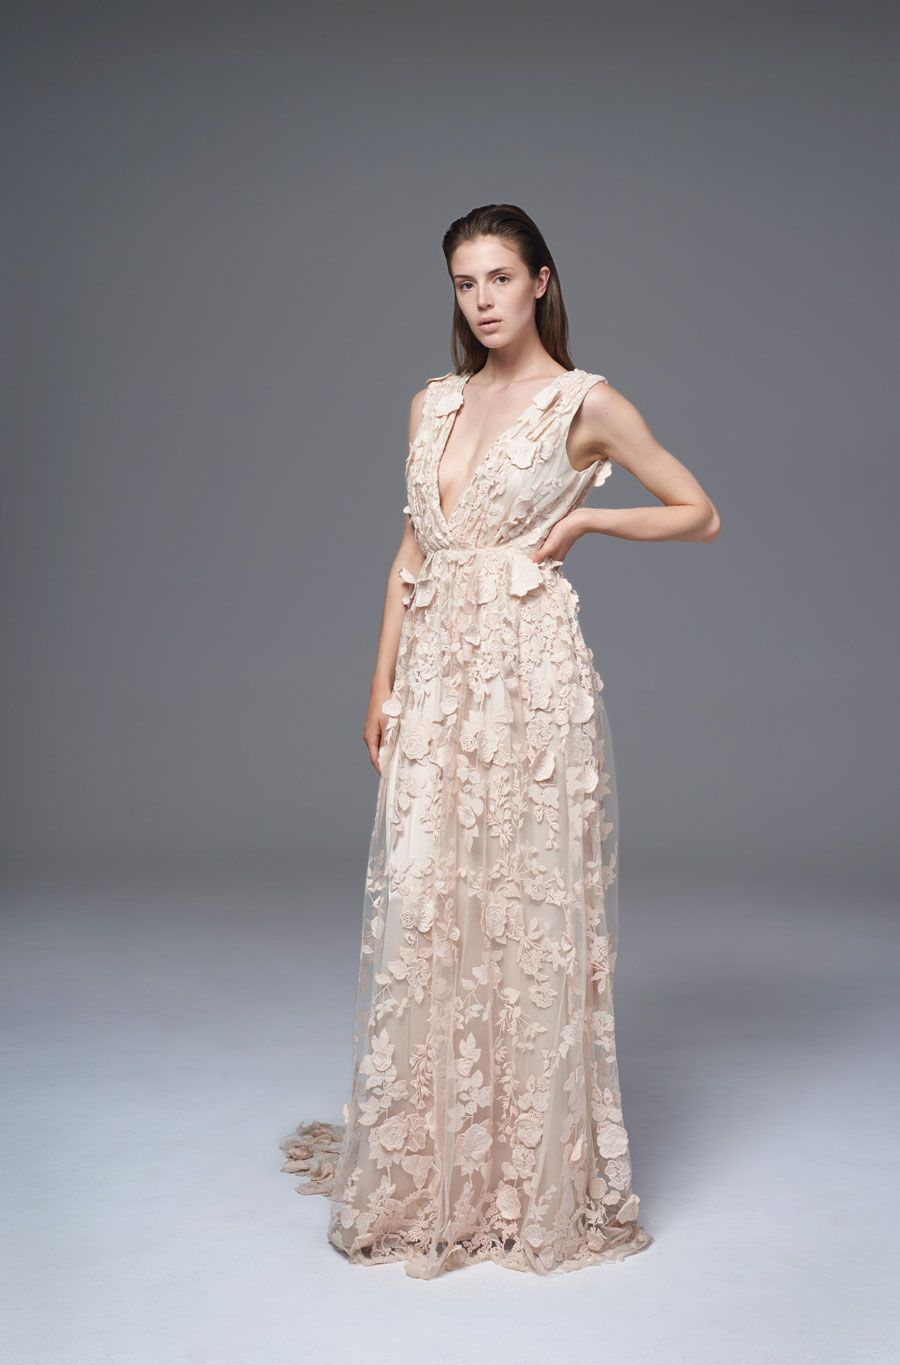 Wedding dresses the uwild loveu collection by halfpenny london